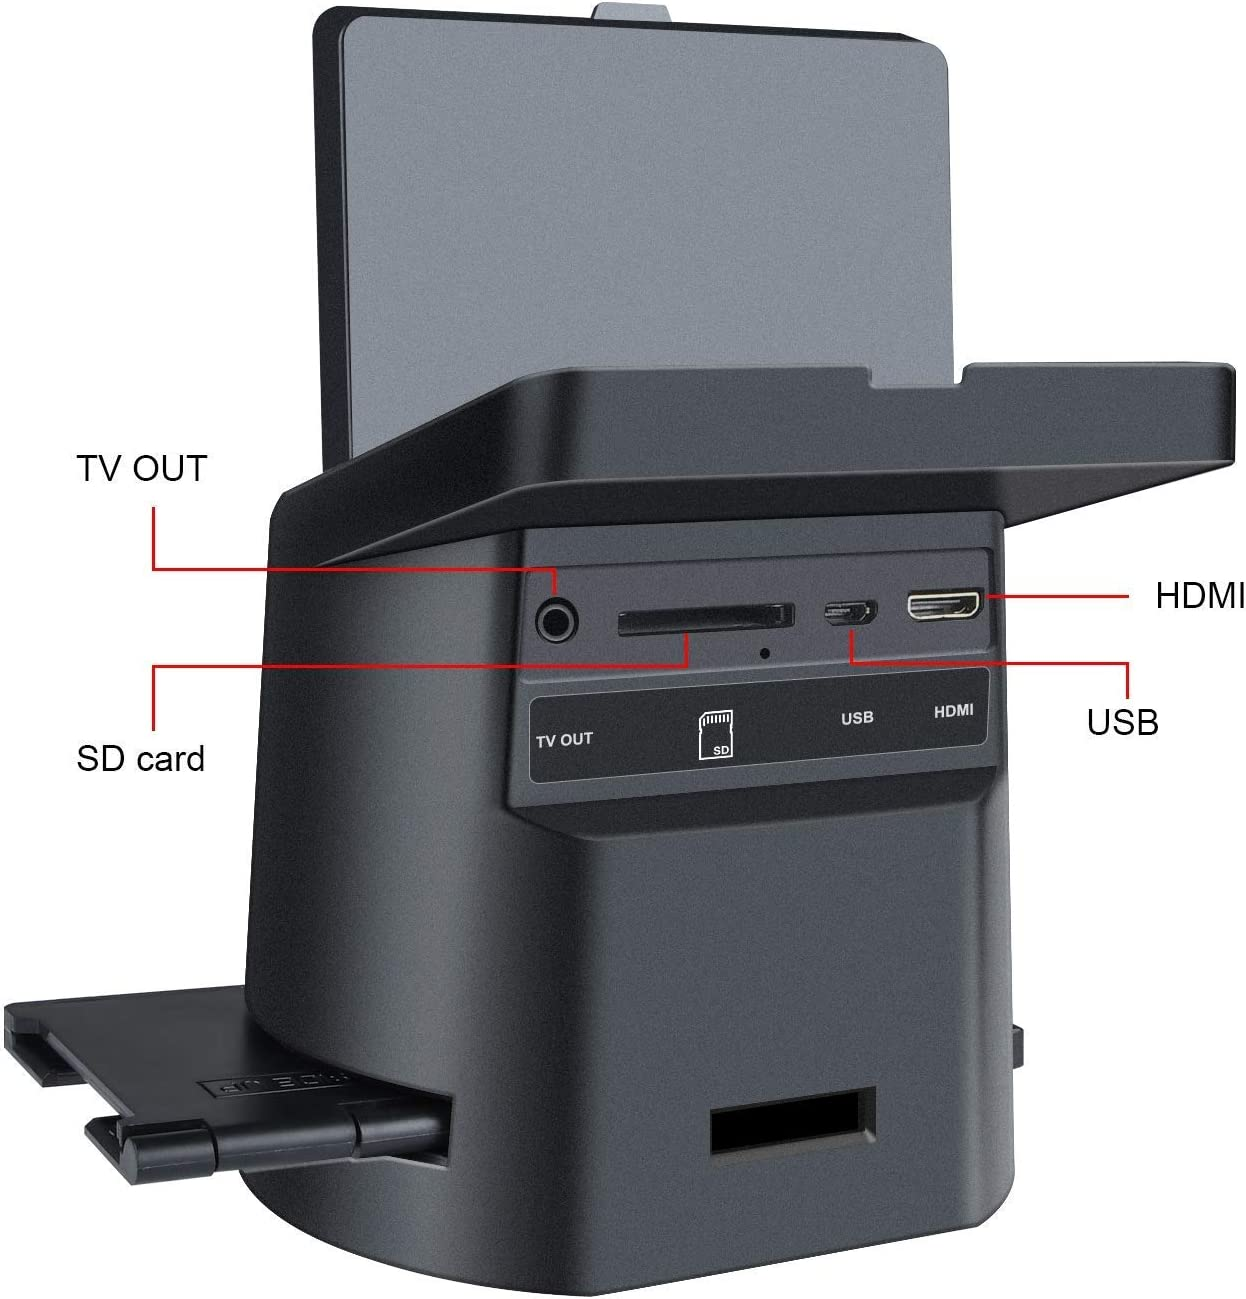 110 Converts 35mm Tilt-Up 3.5 LCD MAC and PC Compatible Film /&Slide Scanner with 22MP Film Inserts Slides Negatives to JPEG Super 8 Films Includes Cables 126